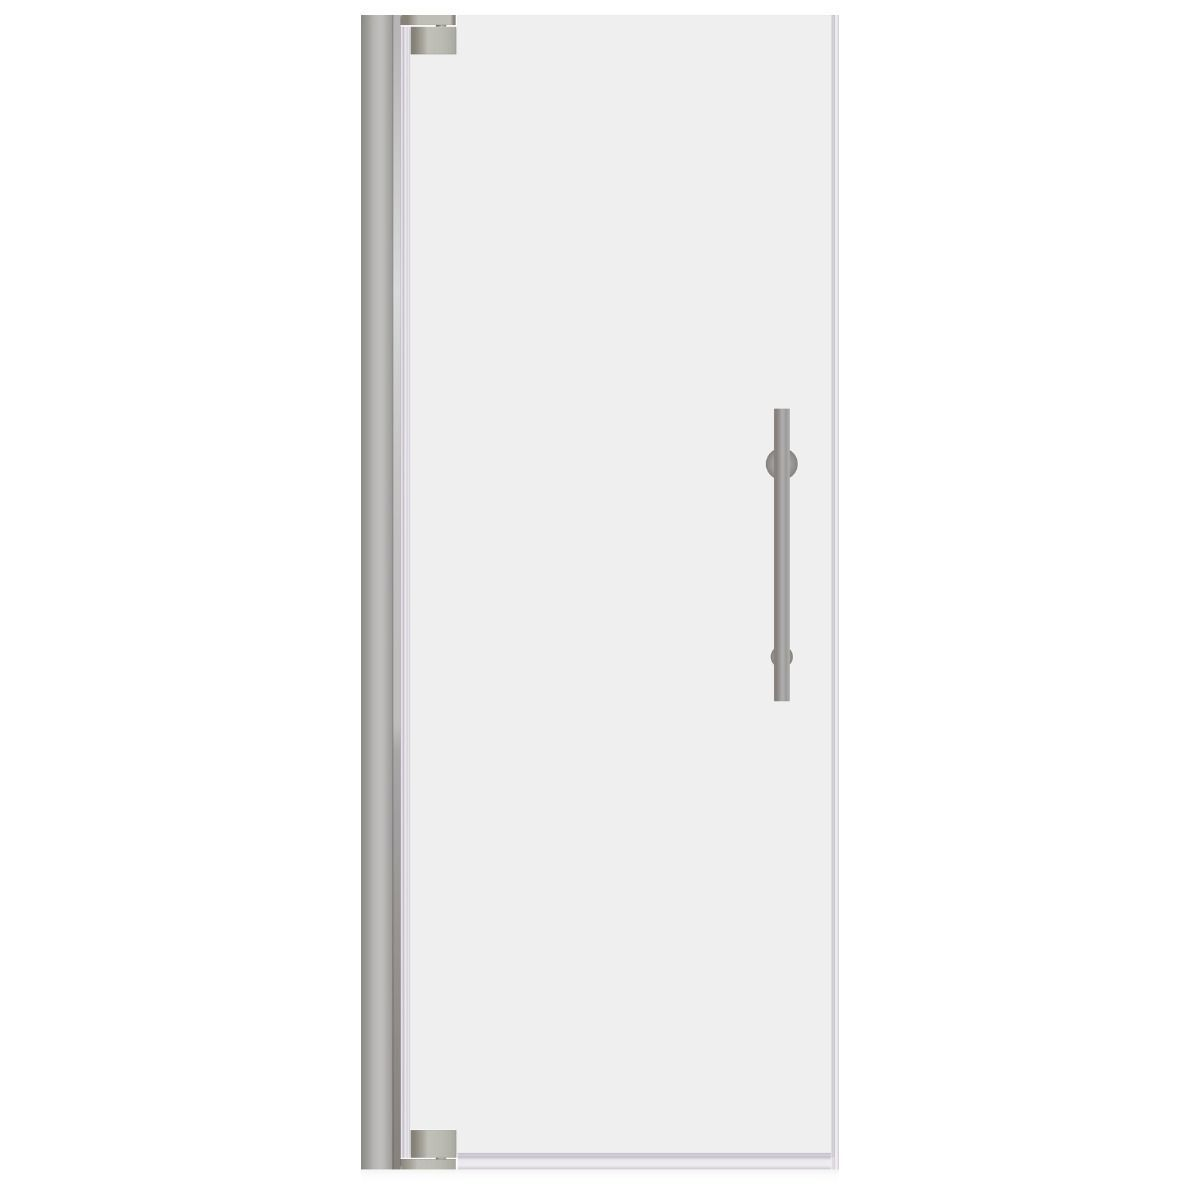 Lesscare Brushed Nickel Ultra G 34 35w X 72h Pivot Swing Out Shower Door